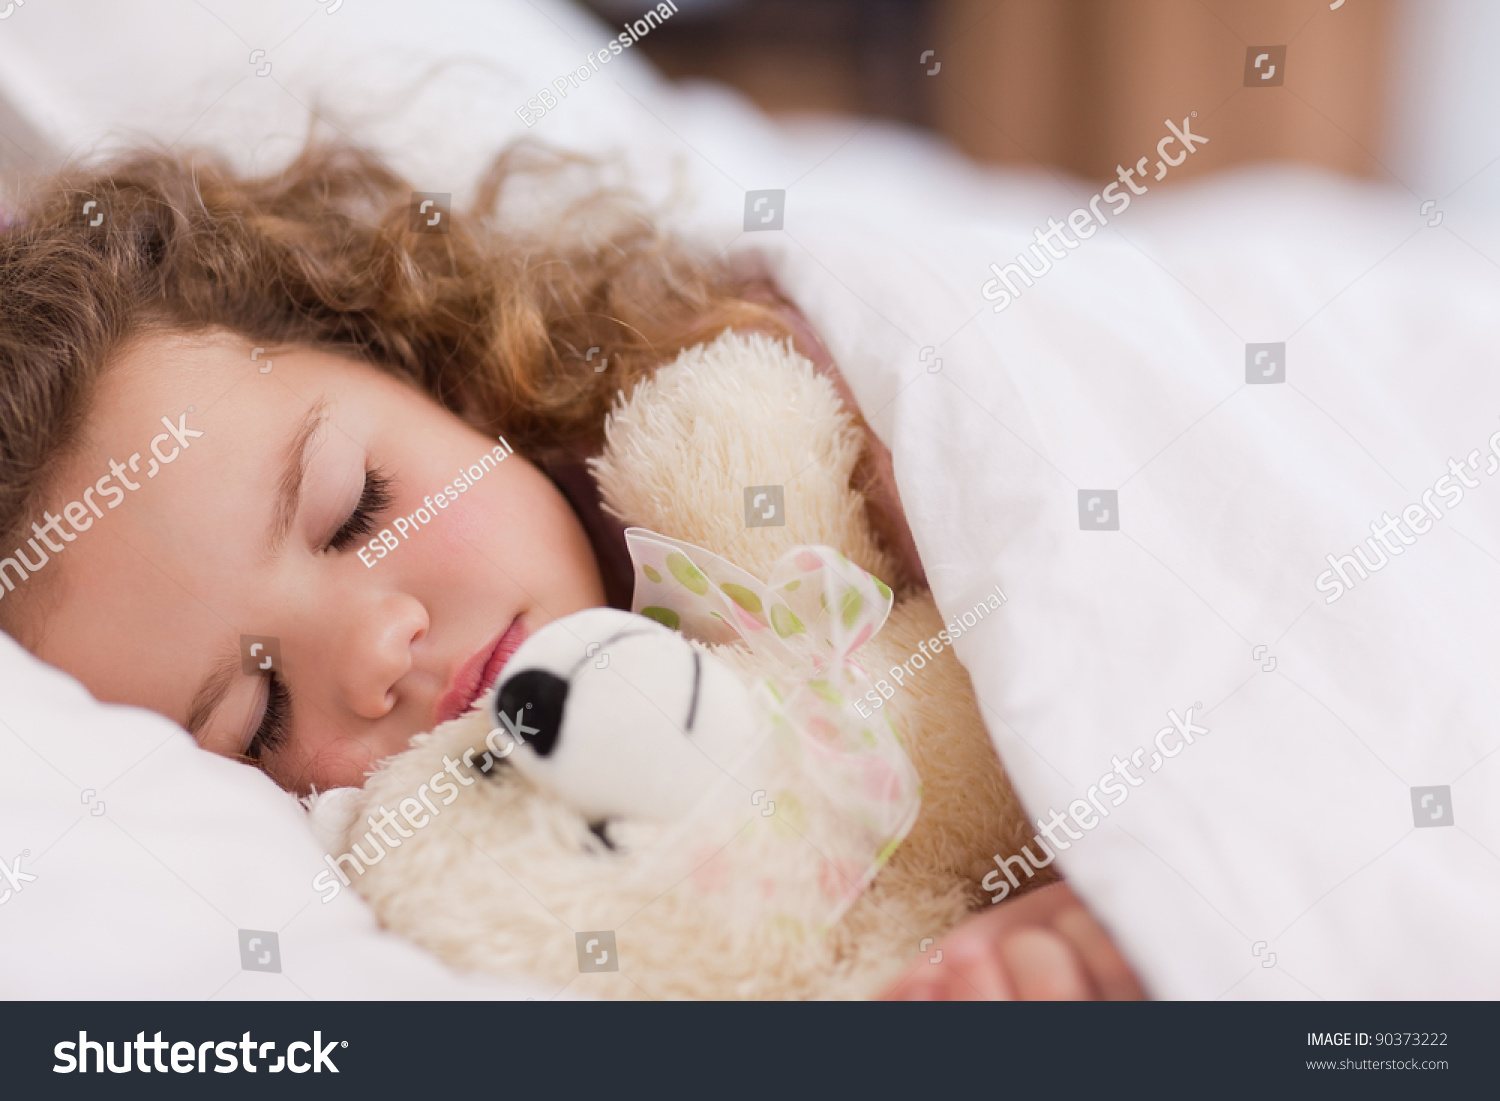 Sweet Little Girl Sleeping In Her Little Bed Stock Photo, Picture ...